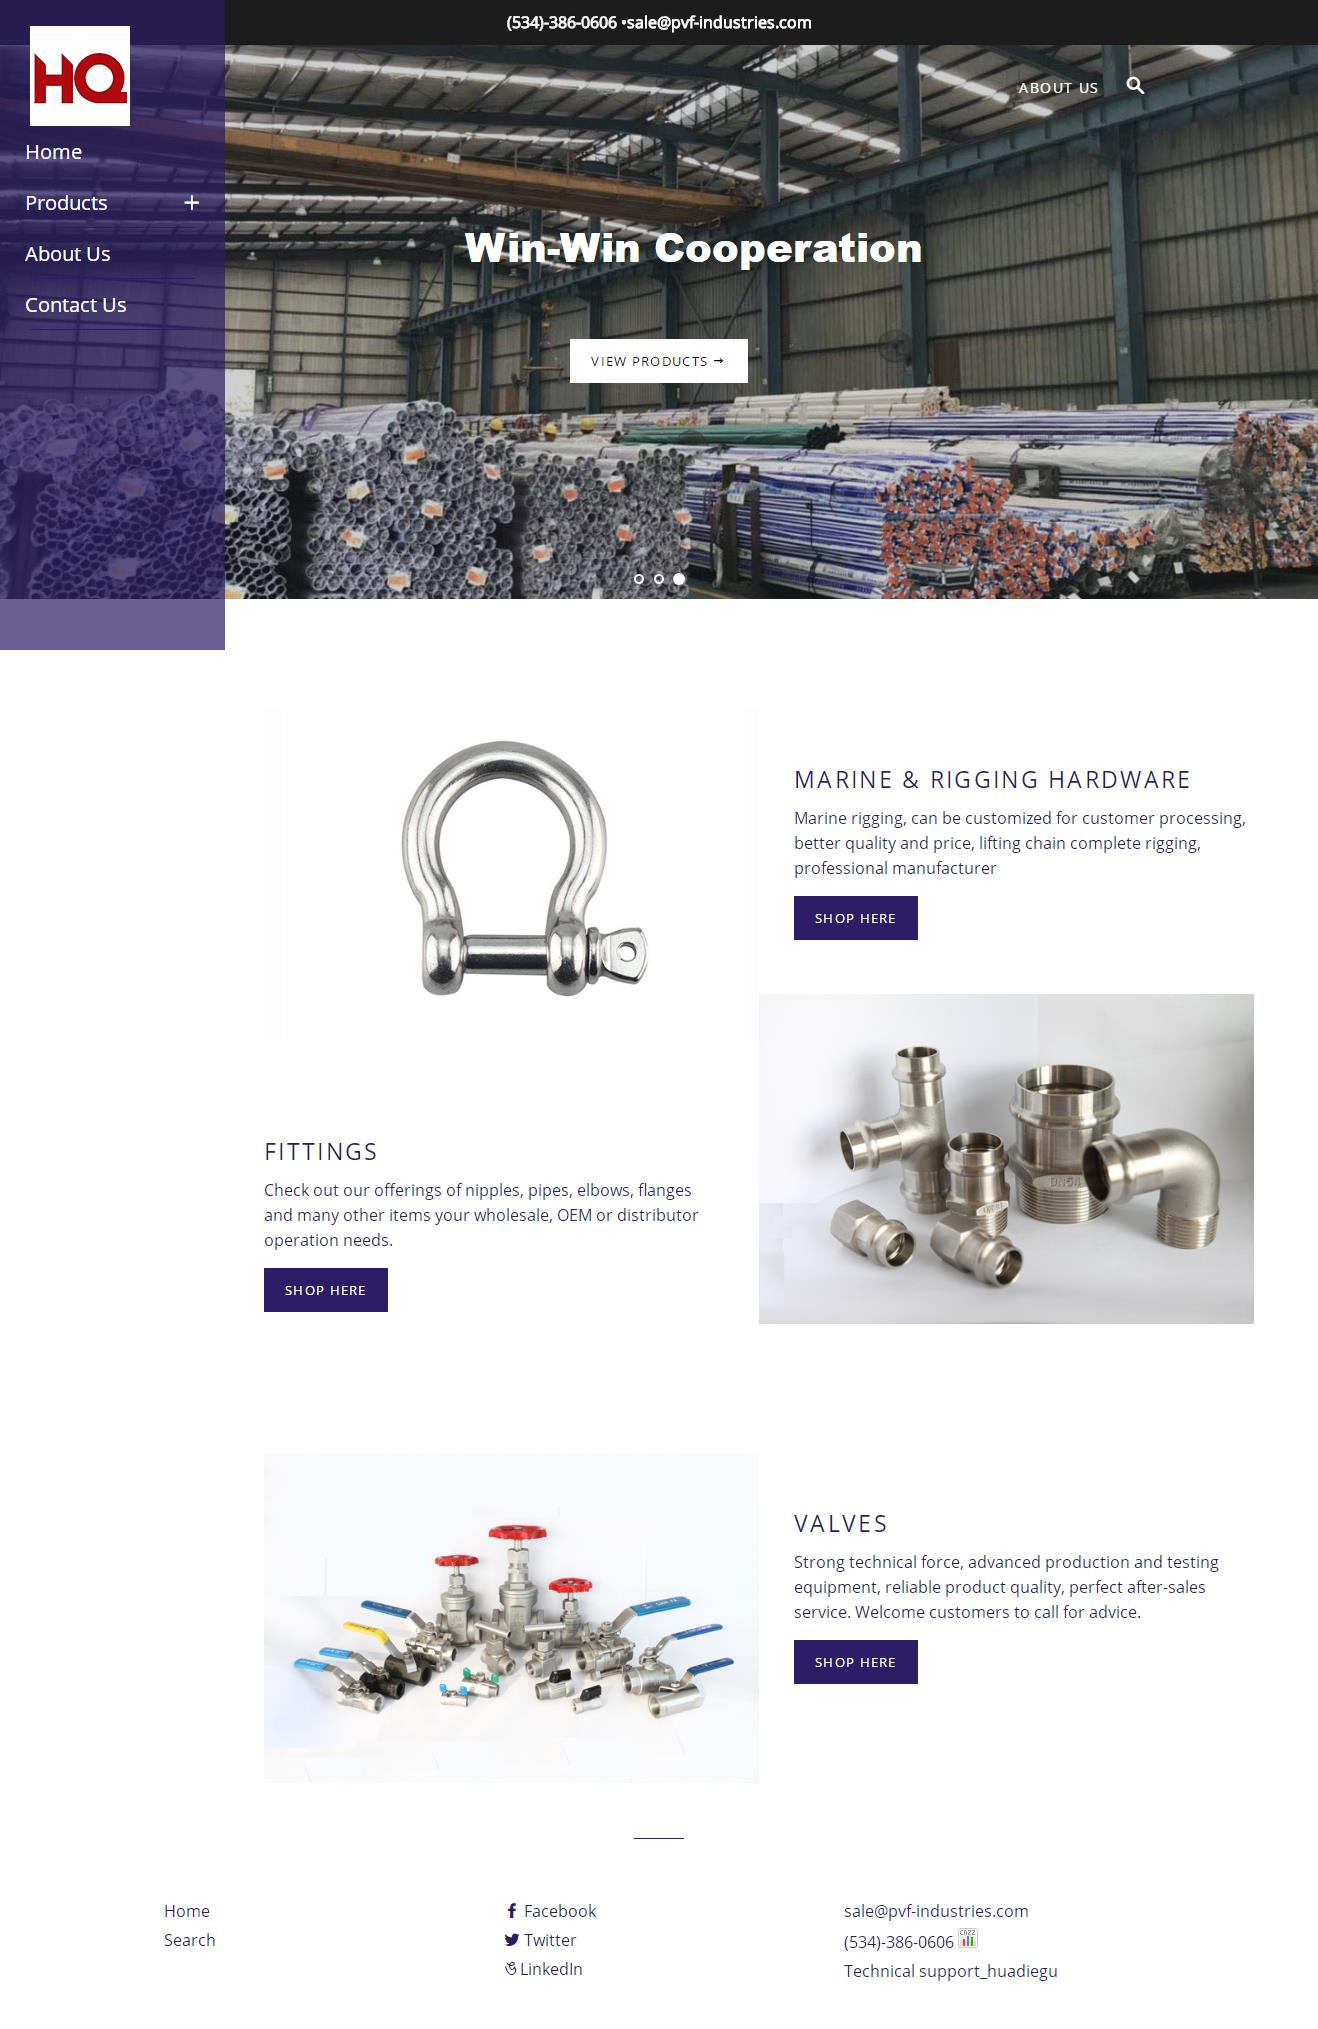 HQ Valves And Fittings Mfg Co.